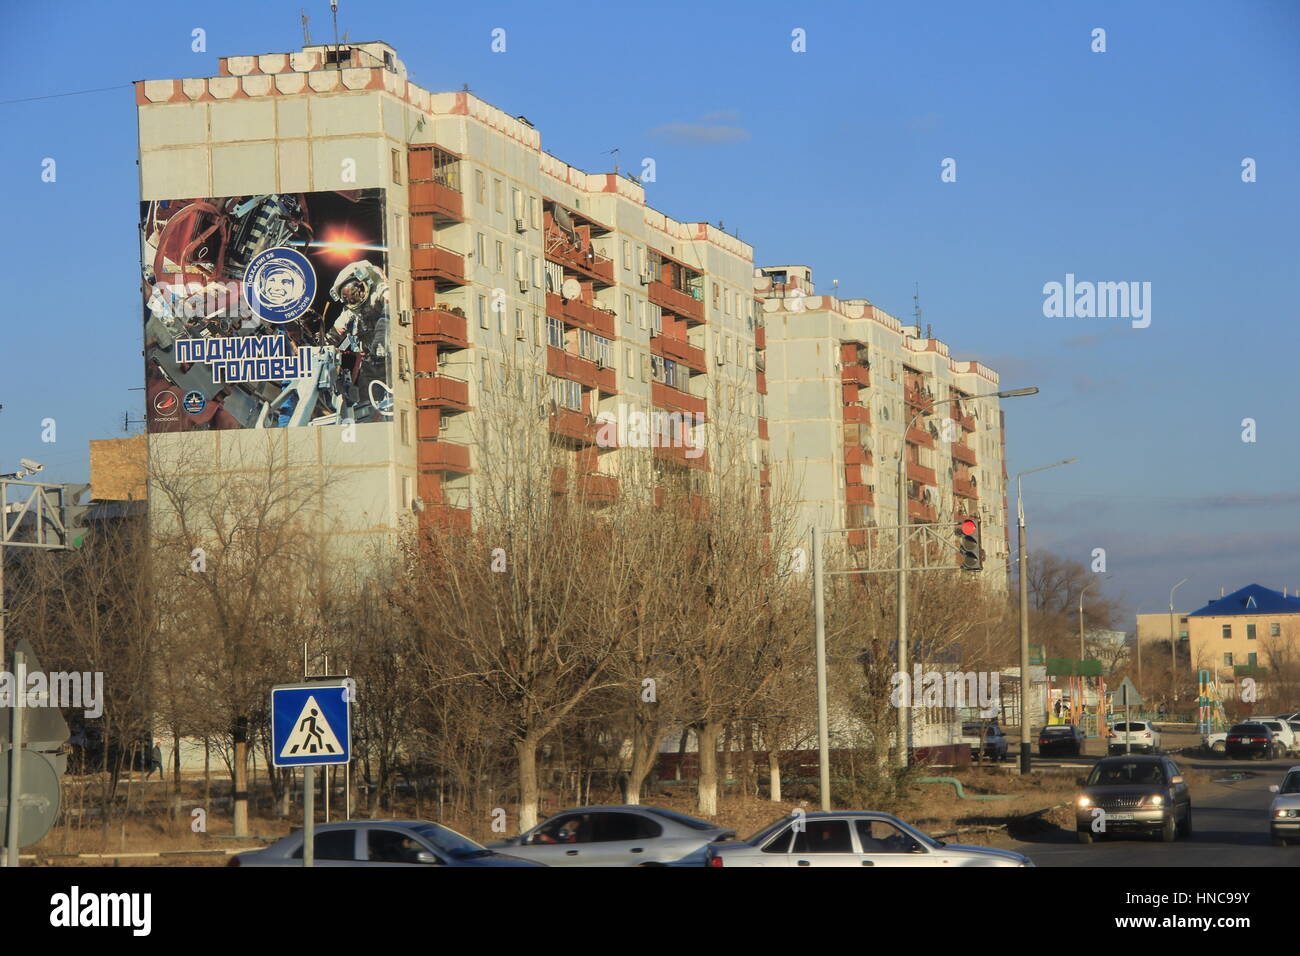 Baikonur, Kazakhstan. 13th Nov, 2016. View of an apartment building with a wall painting relating to space travel - Stock Image